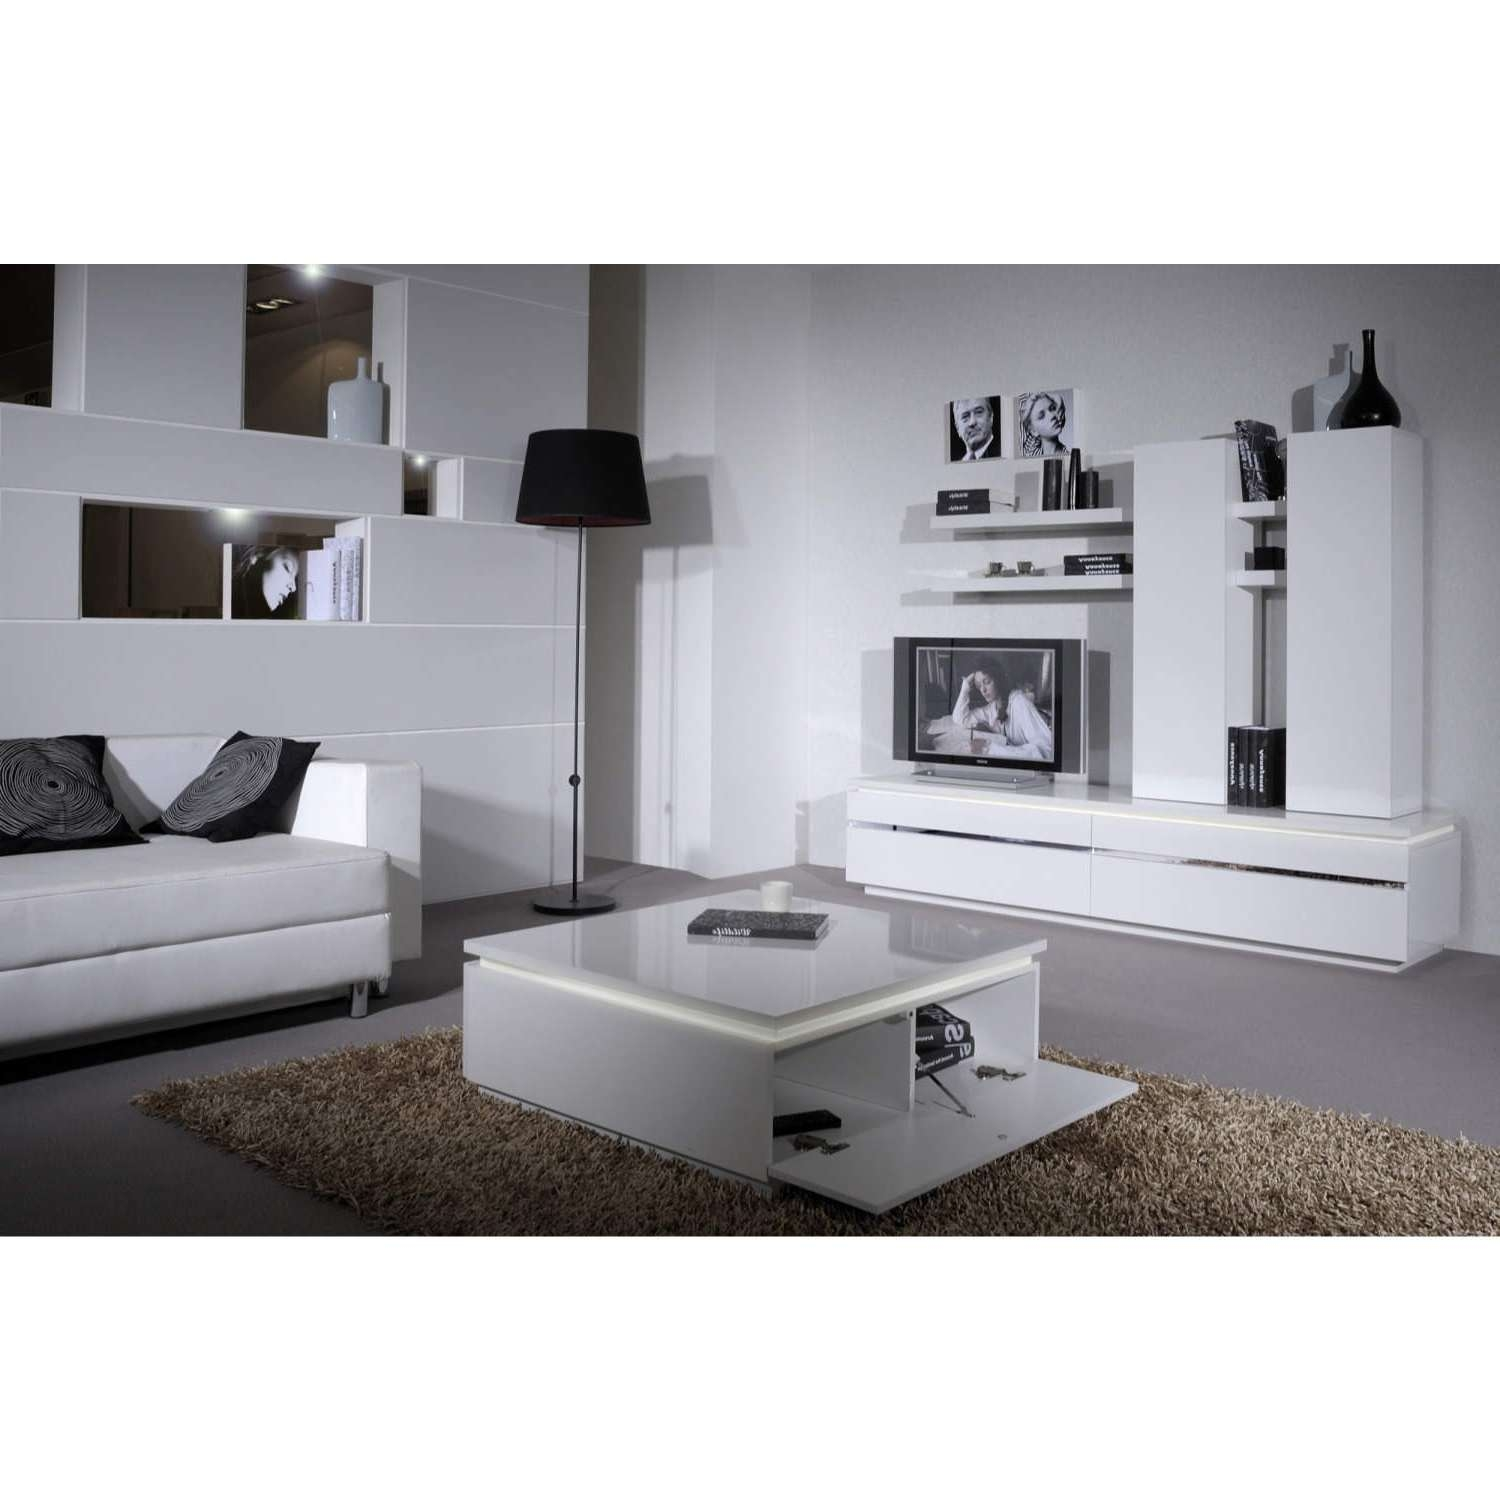 Coffee Tables : White Coffee Table With Storage Swing Swivel Top With Regard To Well Known Gloss Coffee Tables (View 4 of 20)